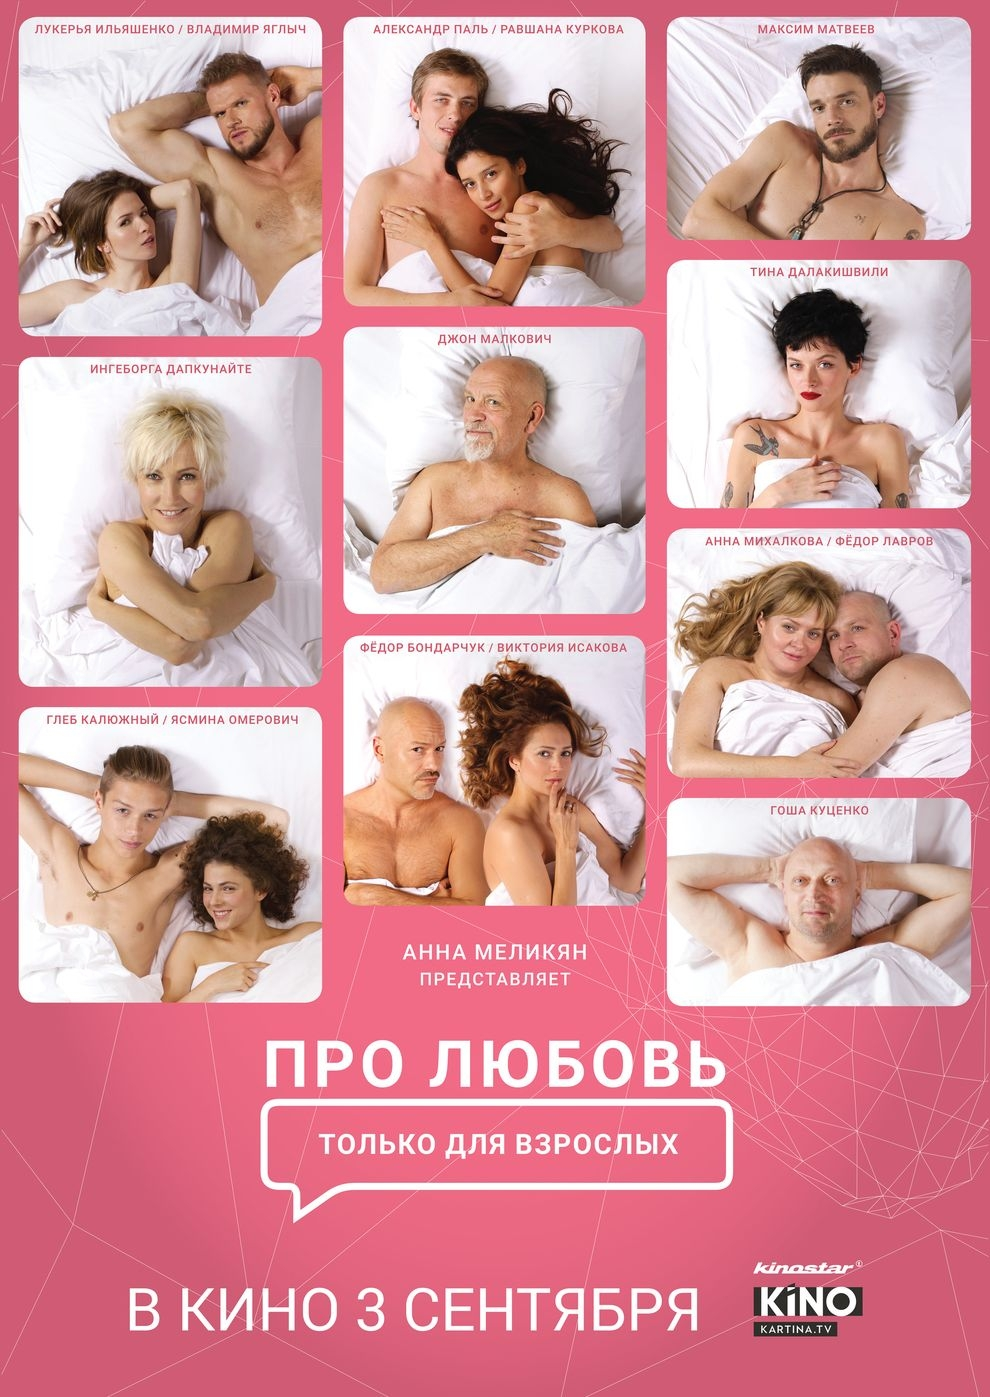 About Love 2 (Poster)